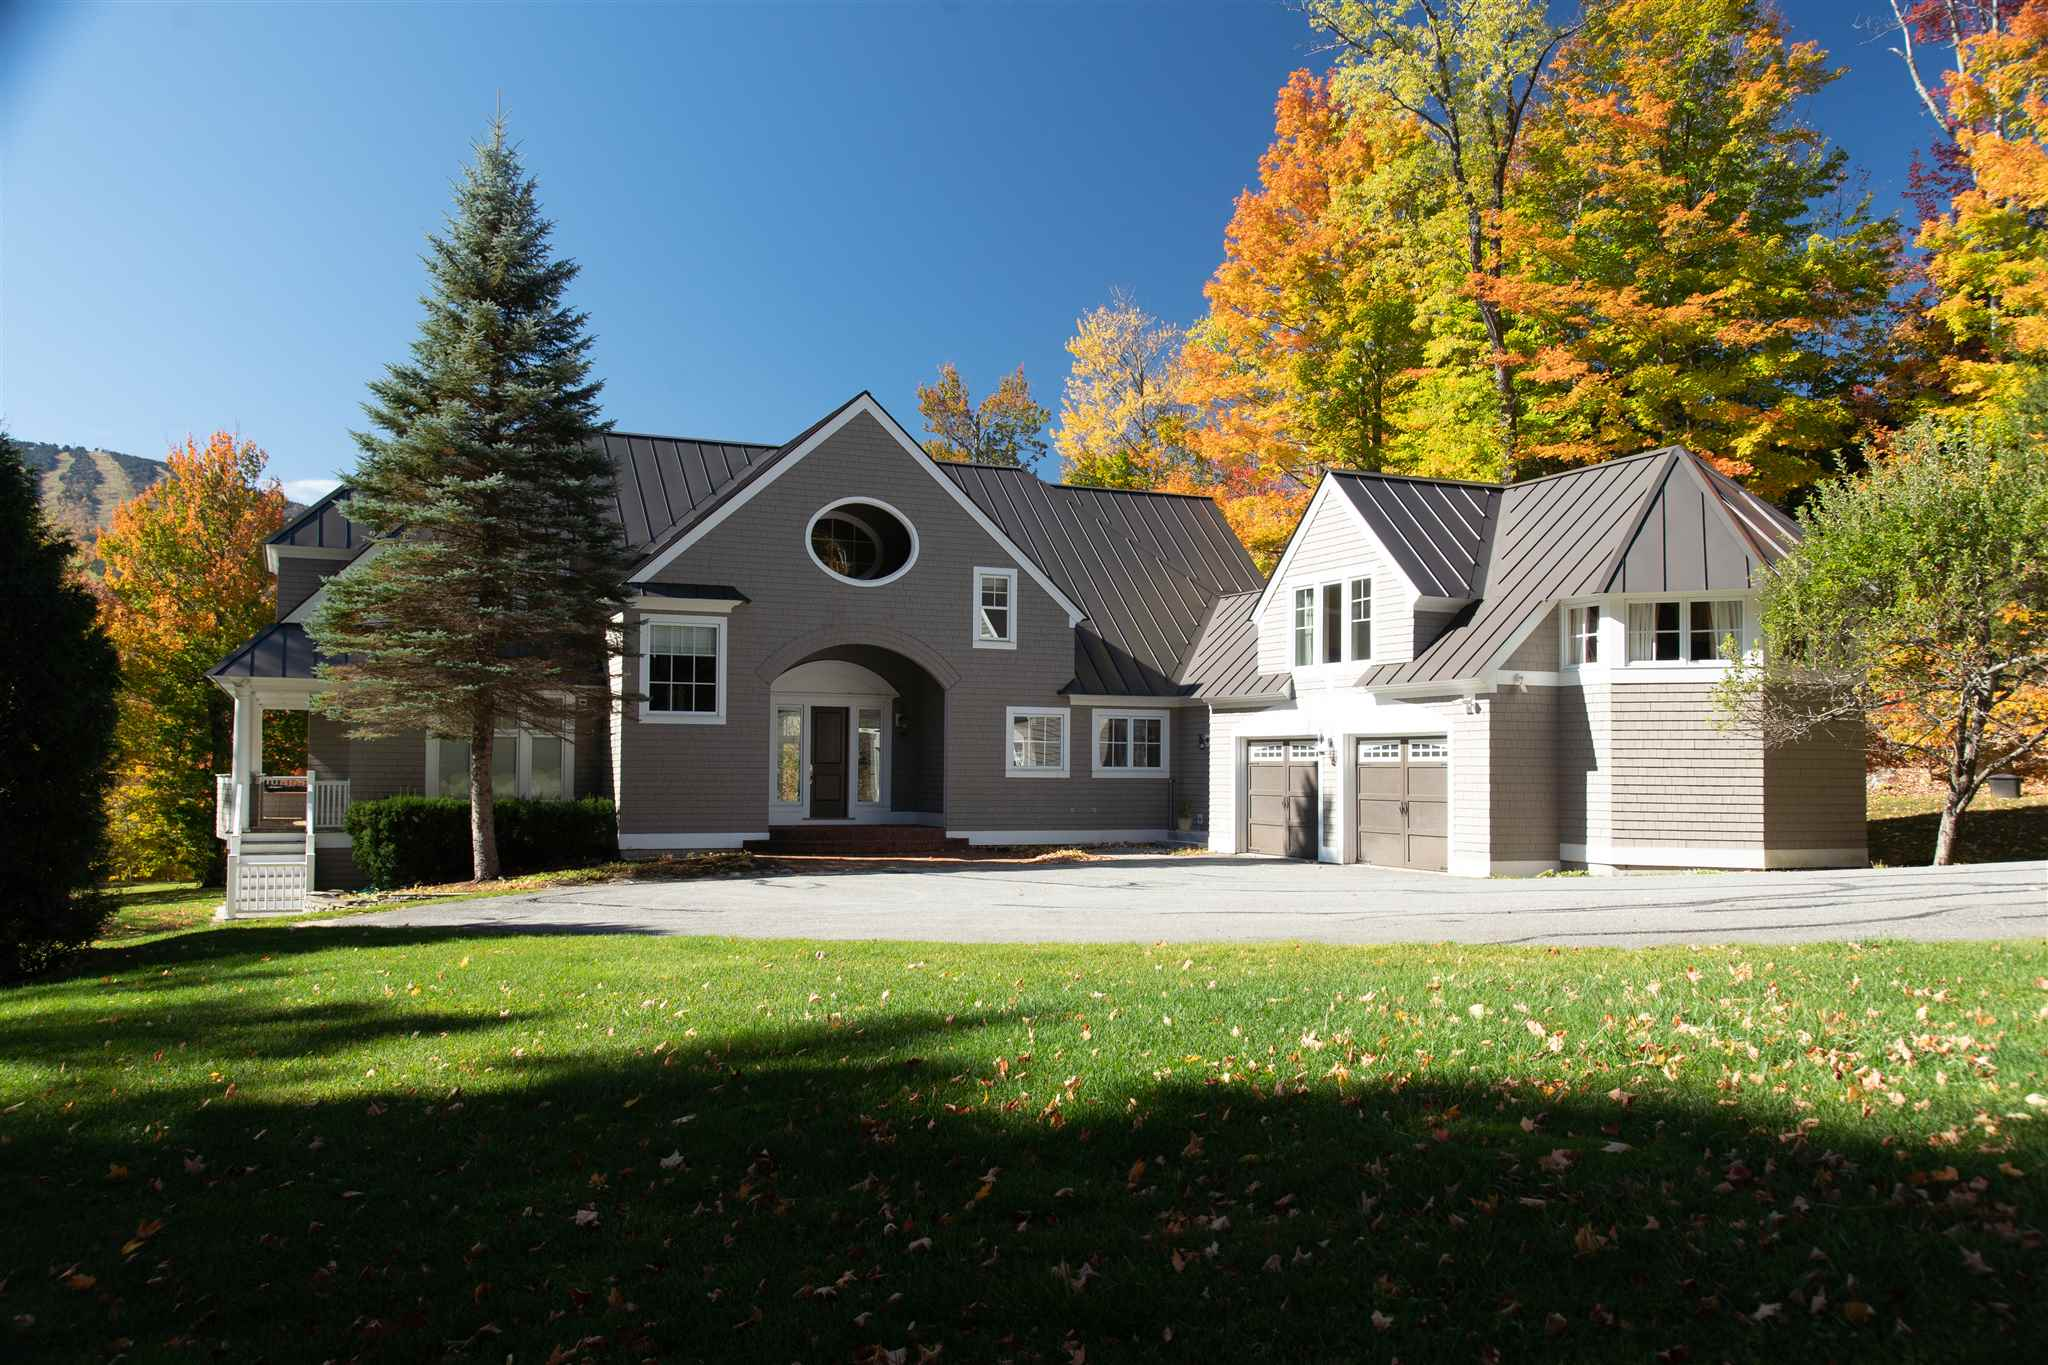 Photo of 9 Stone House Road Winhall VT 05340